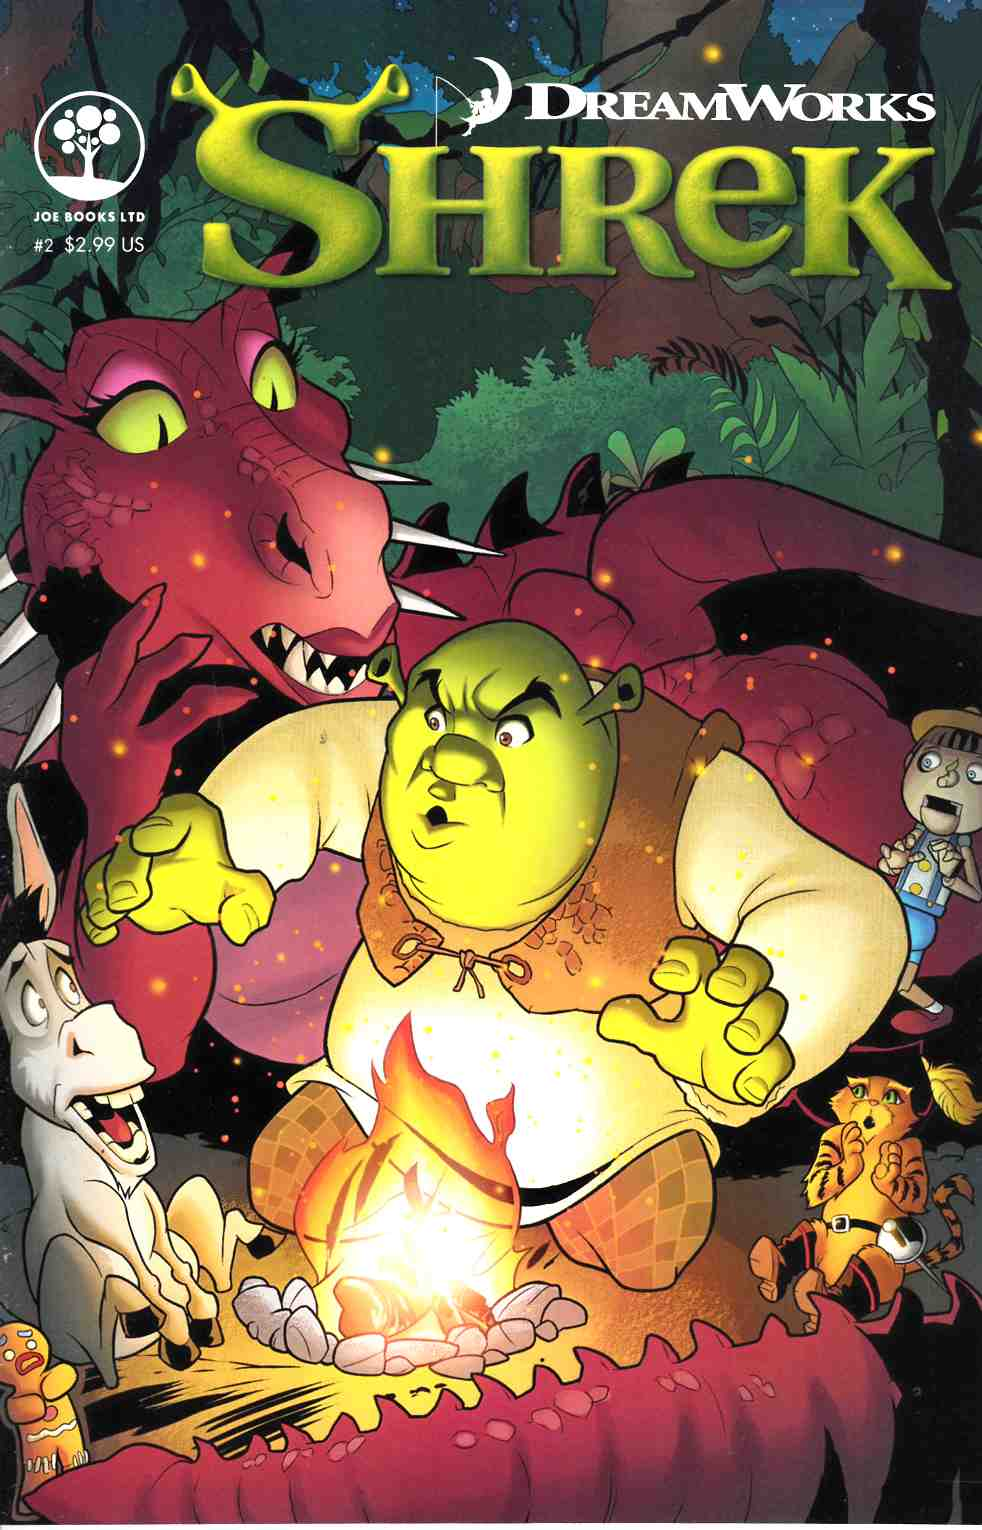 Dreamworks Shrek #2 [Joe Books Comic] LARGE